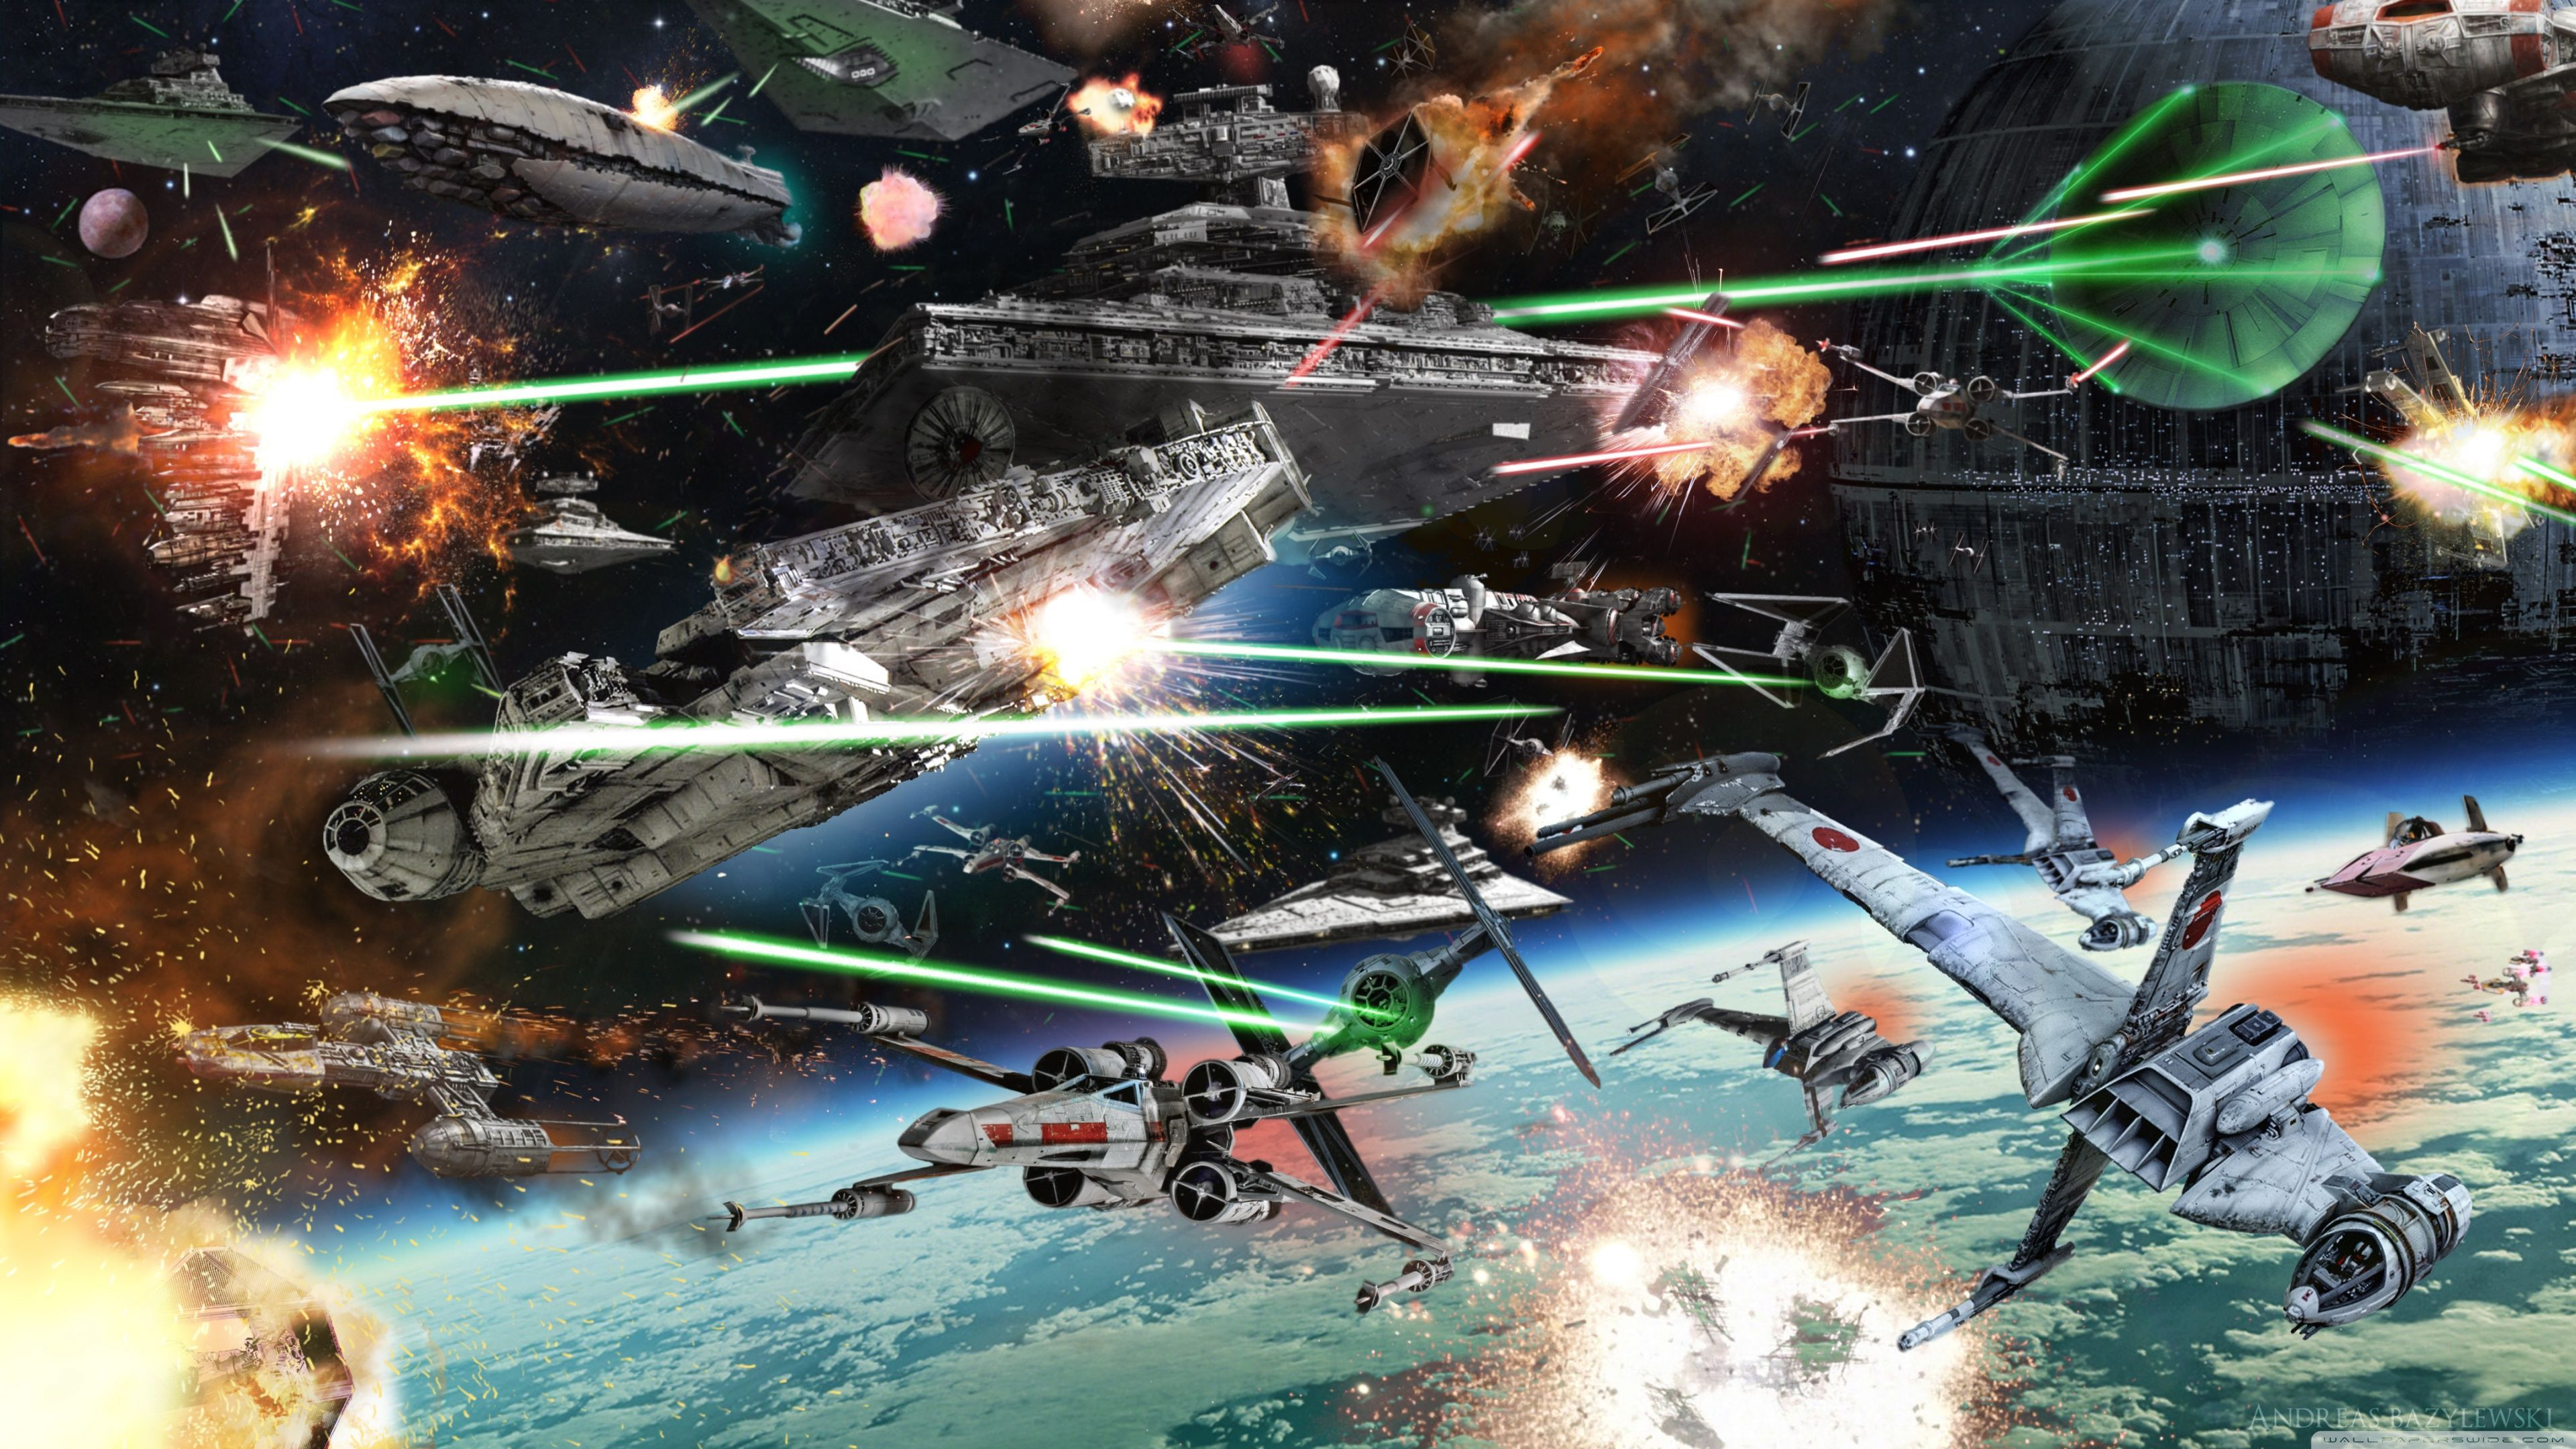 Star Wars Battle Wallpapers